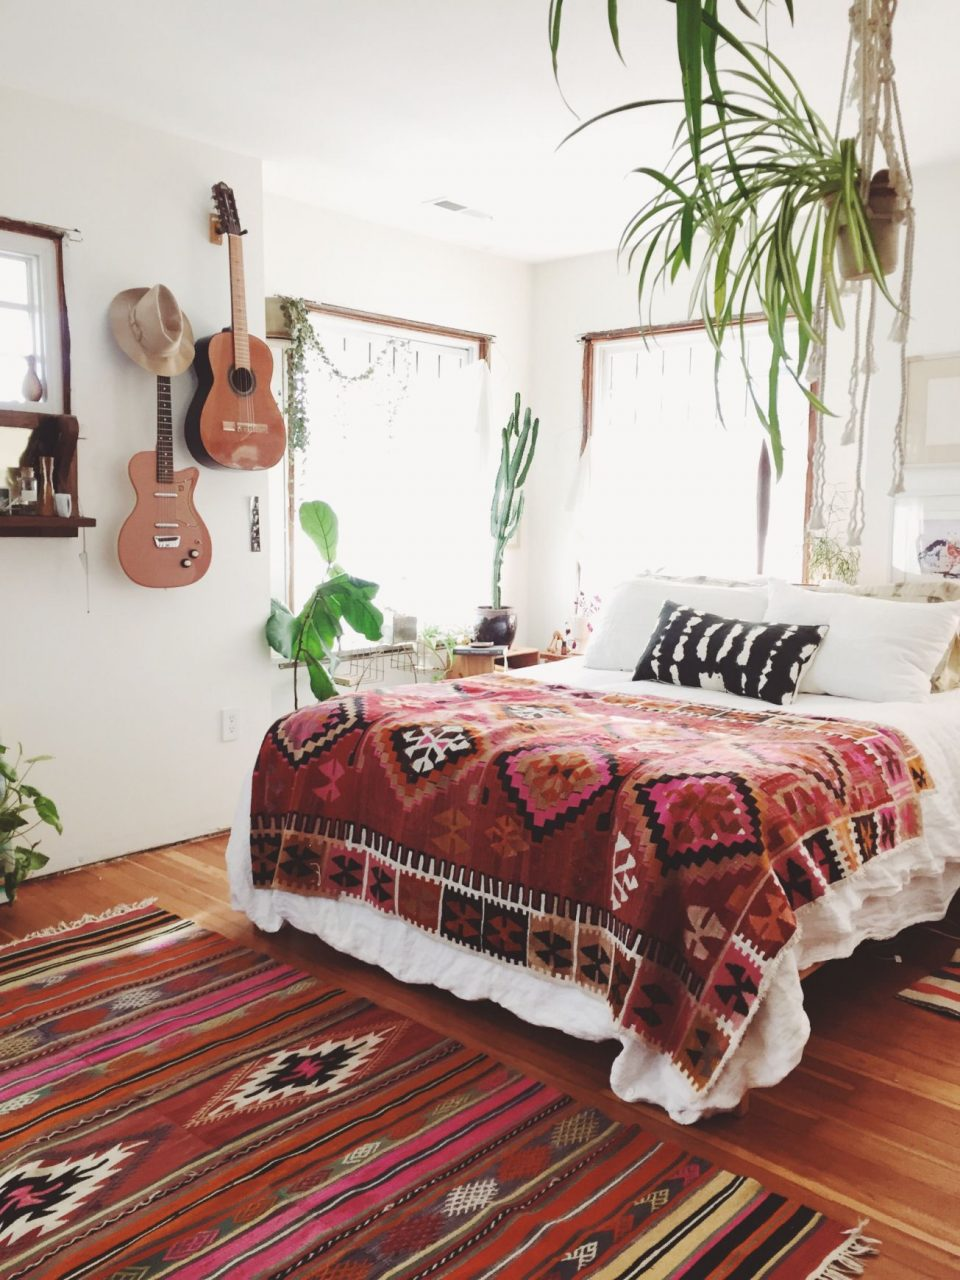 57 Bohemian Bedrooms Thatll Make You Want To Redecorate Asap Home